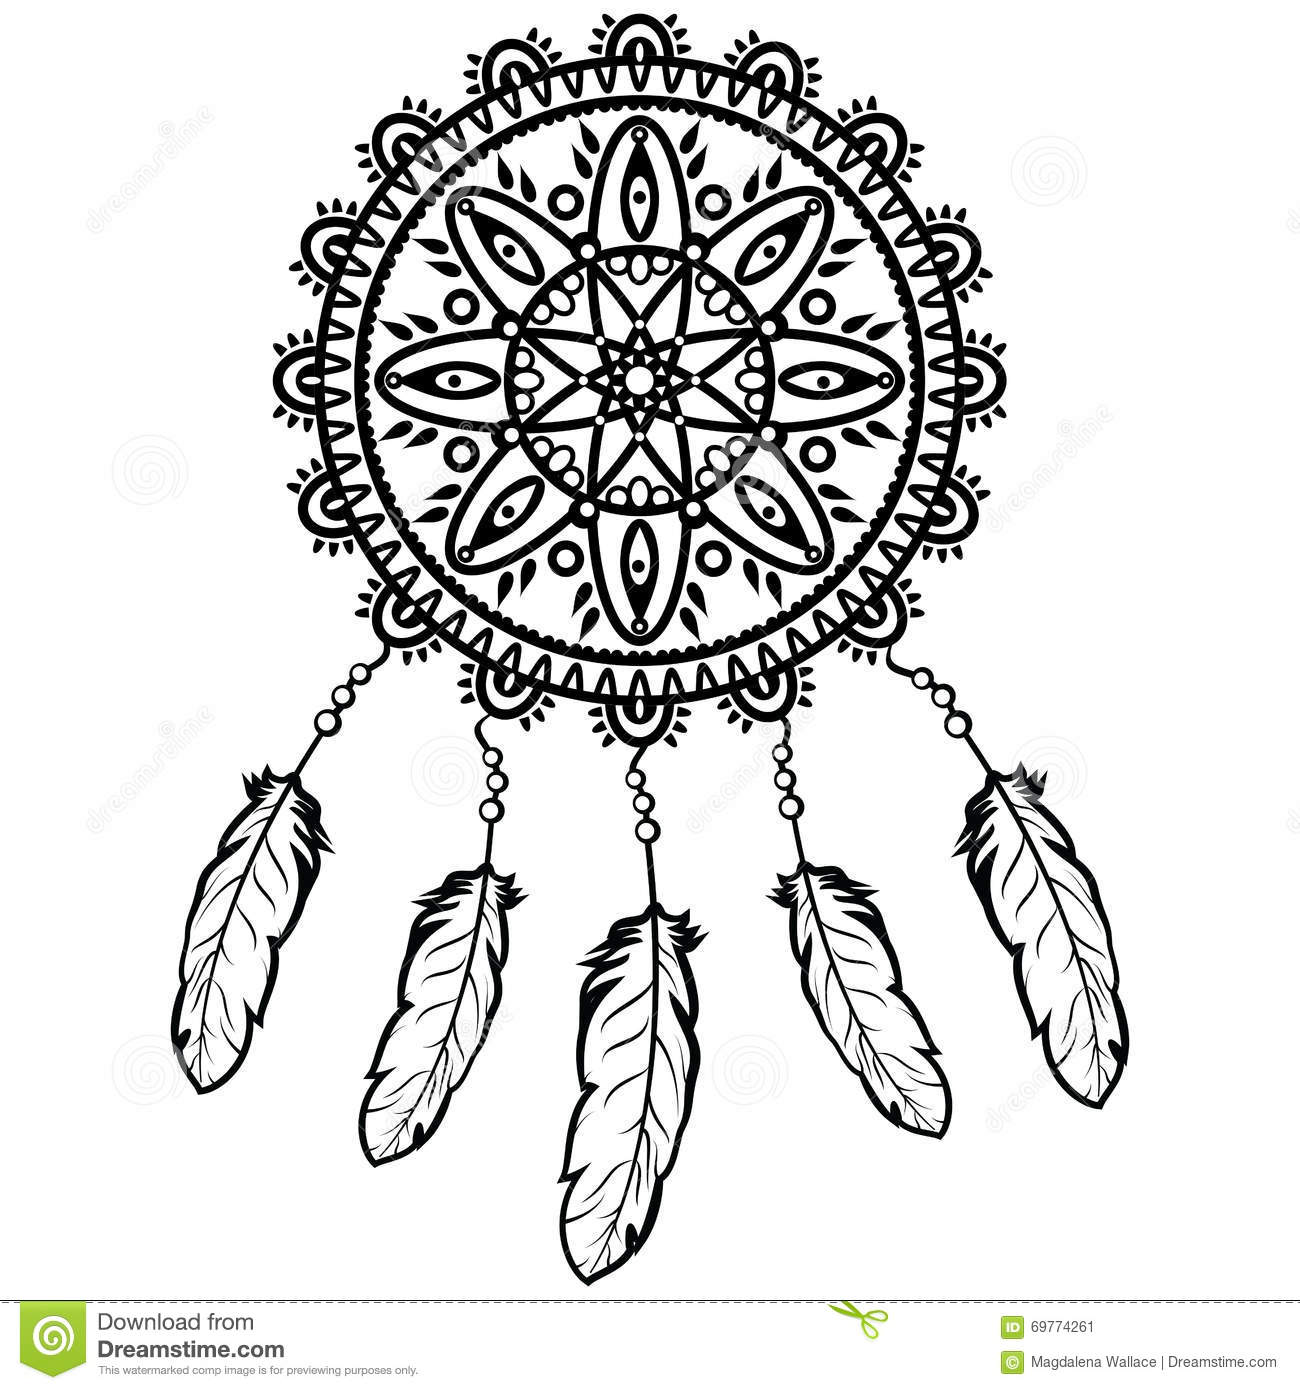 Dream catcher graphic in black and white decorated with for Dream catcher graphic